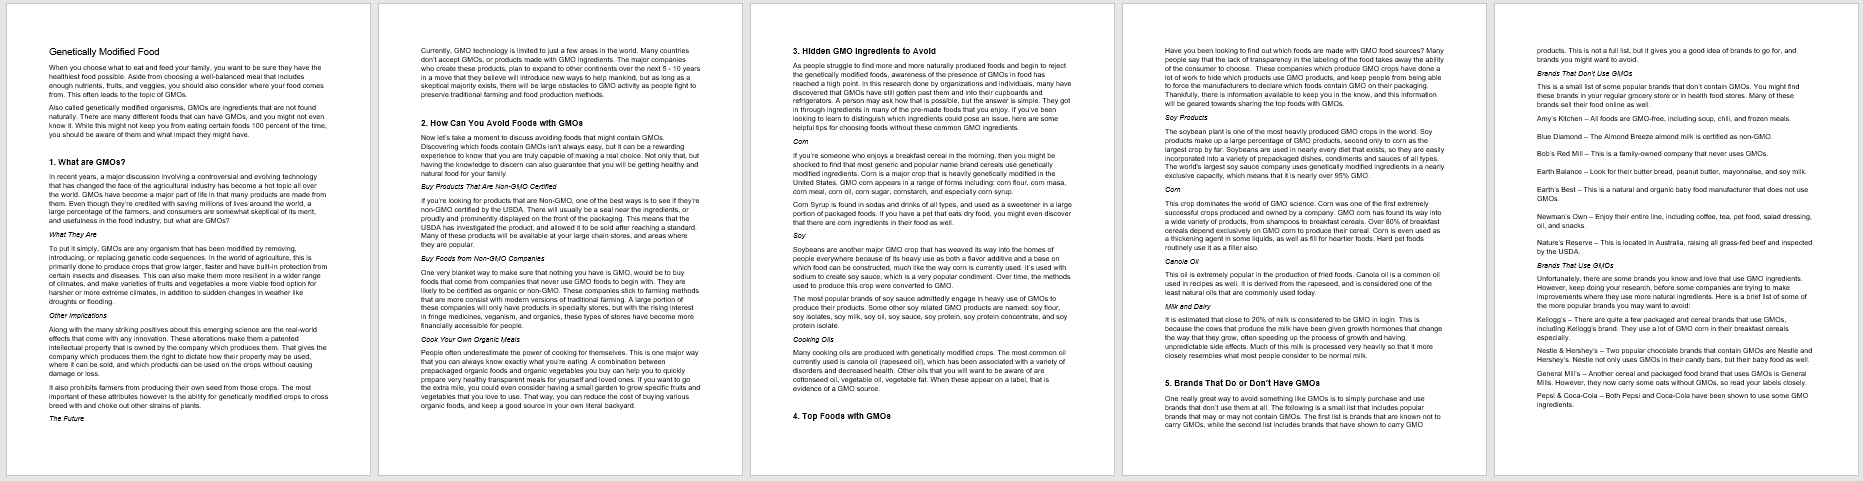 genetically modified foods 5 essay Arguments for and against genetically modified food this essay arguments for and against genetically modified food and other 63,000+ term papers, college essay examples and free essays are available now on reviewessayscom.